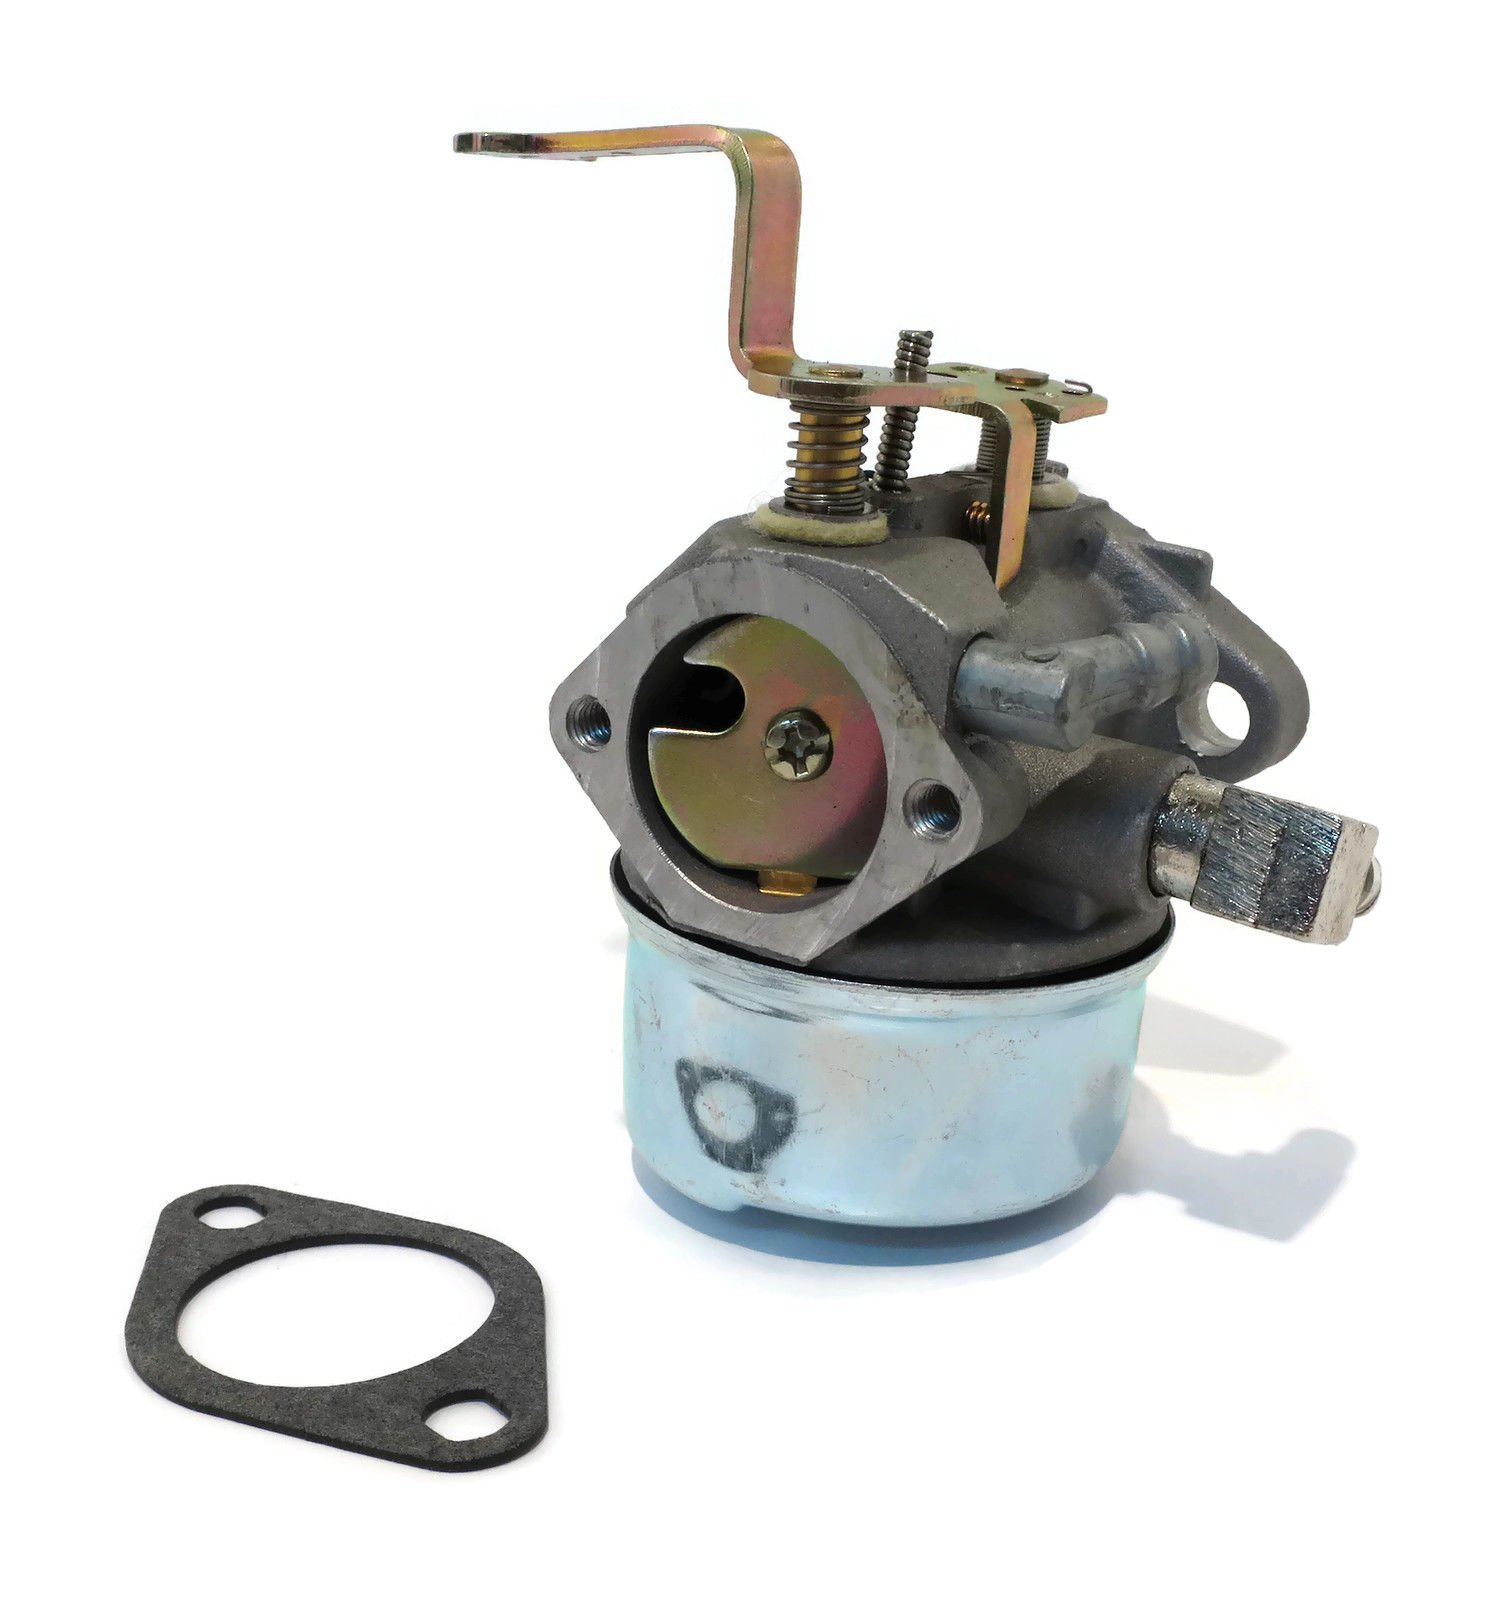 The ROP Shop Carburetor Carb for Tecumseh 640112 Stens 520-954, 056-318 HM80 HM90 HM100 Motor by The ROP Shop (Image #1)